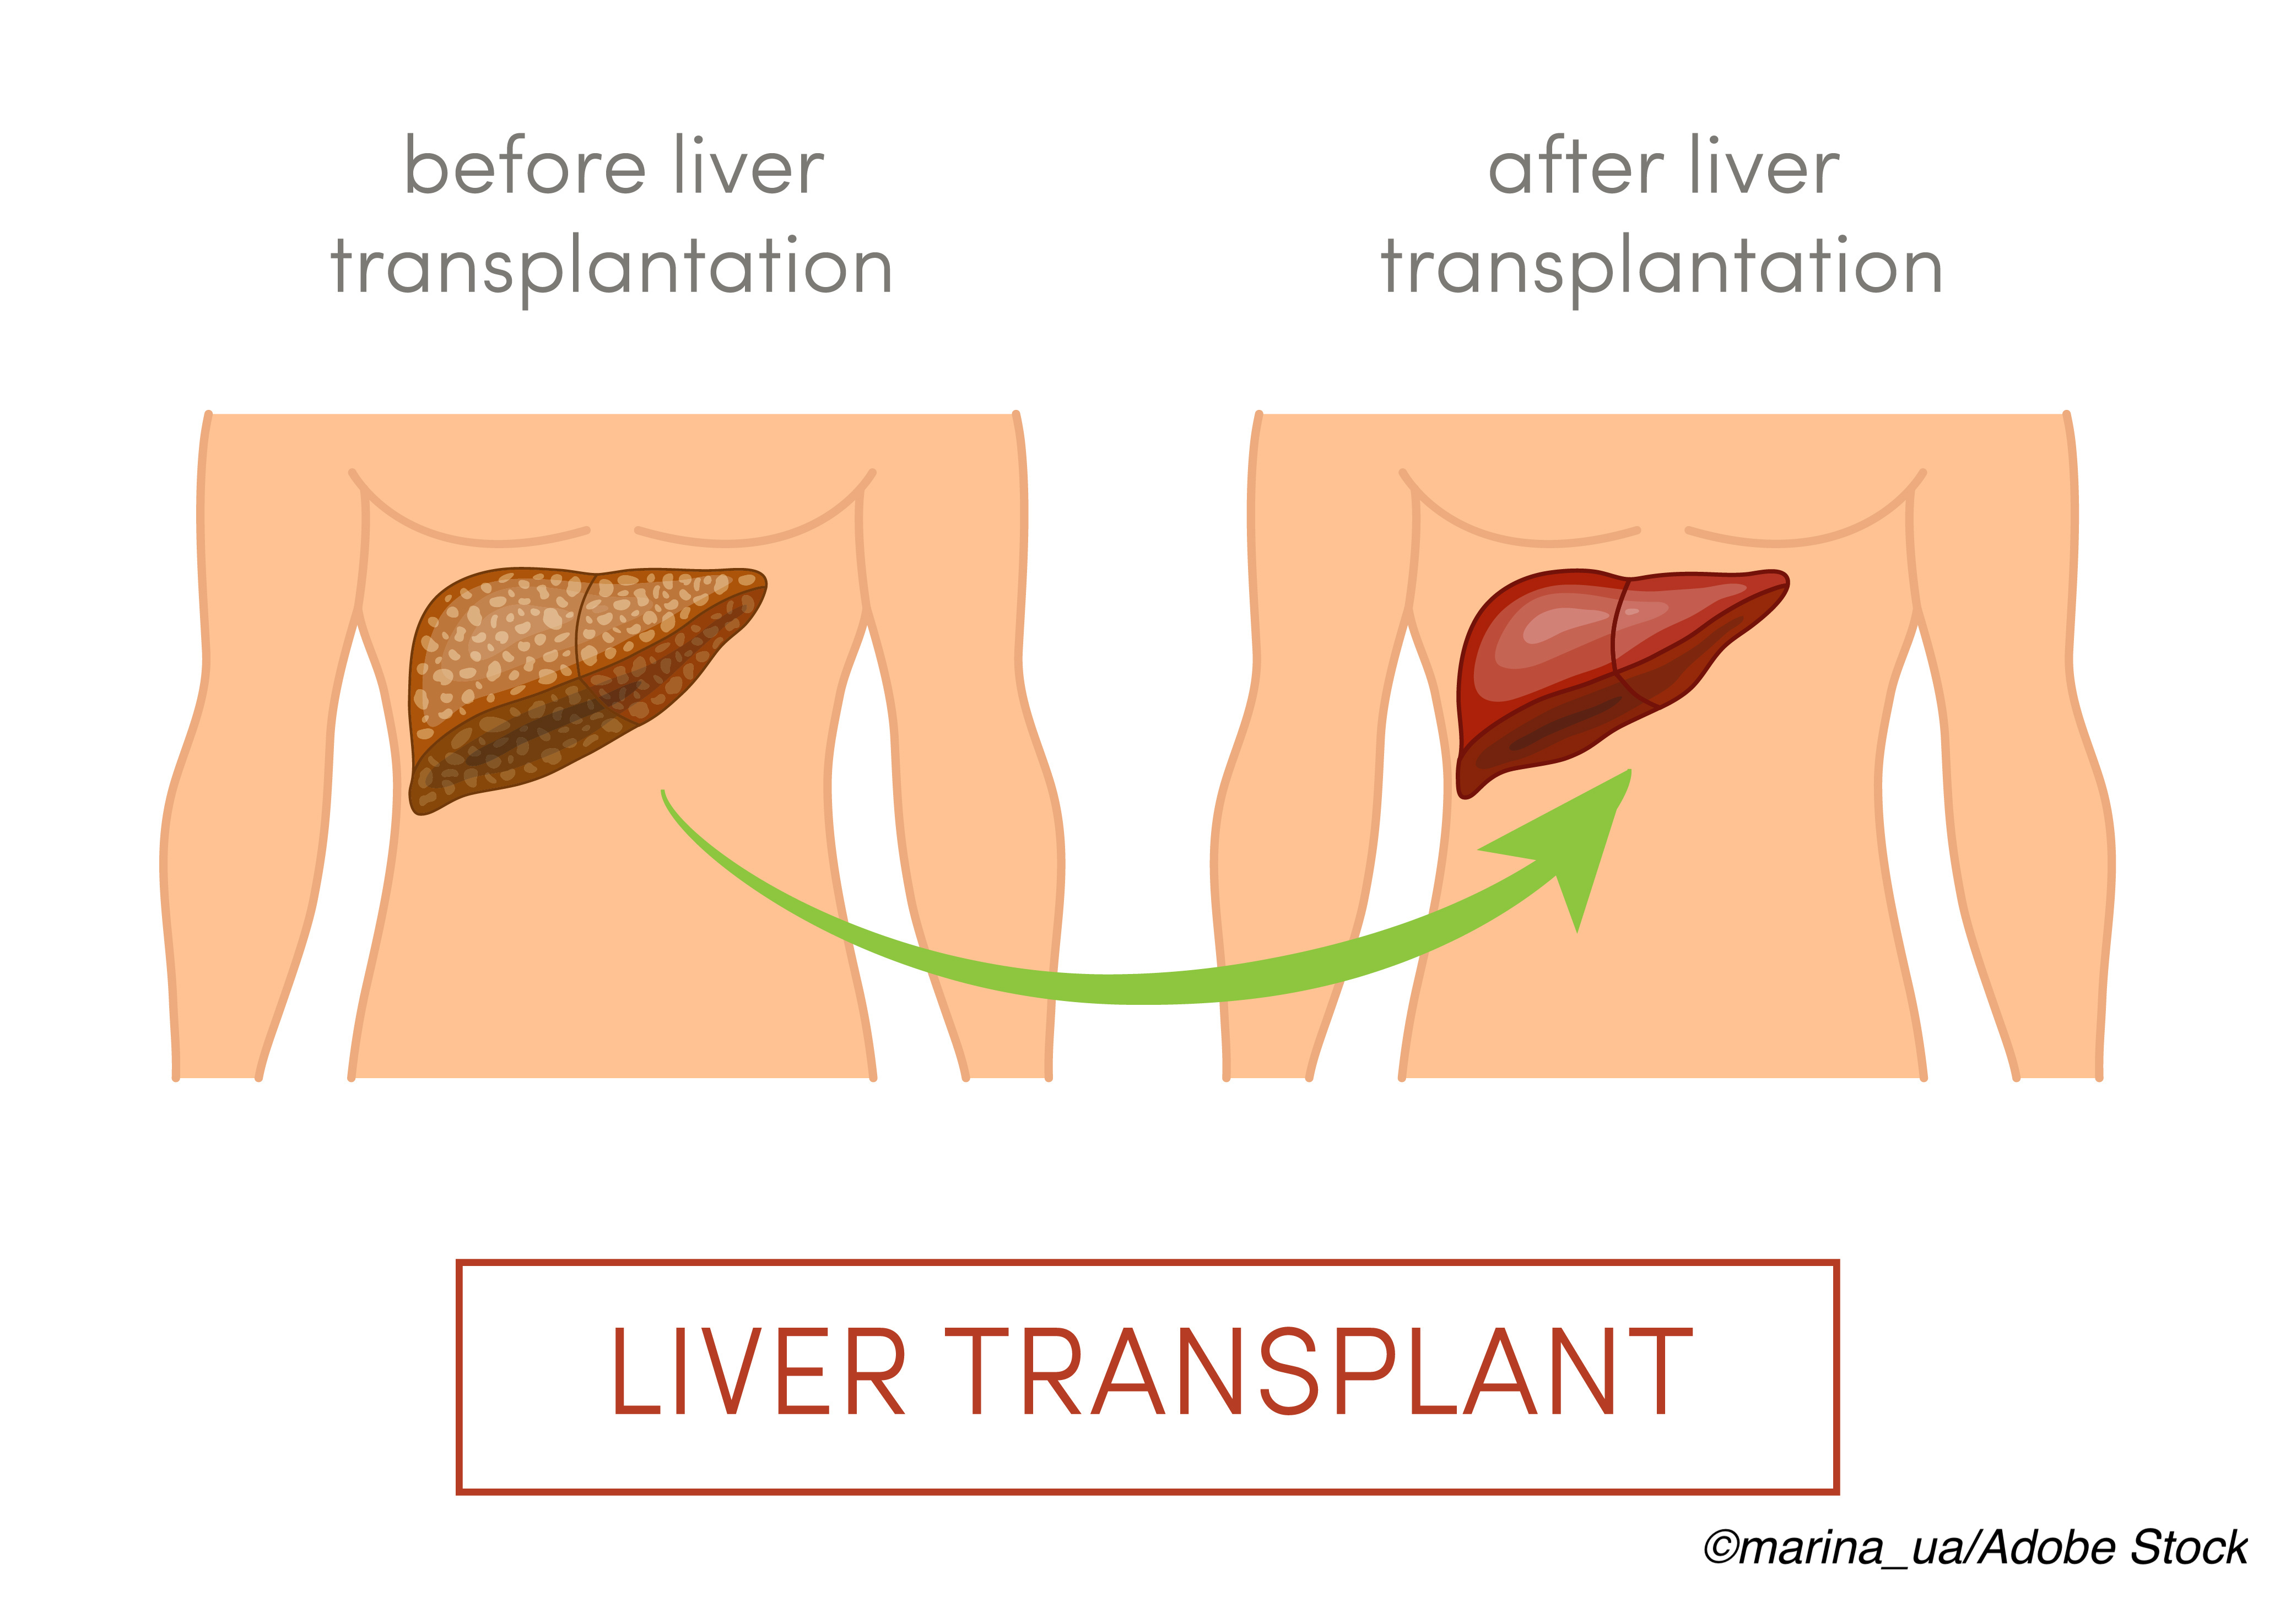 Liver Transplants: Trial Reports Benefits for Cold Perfusion